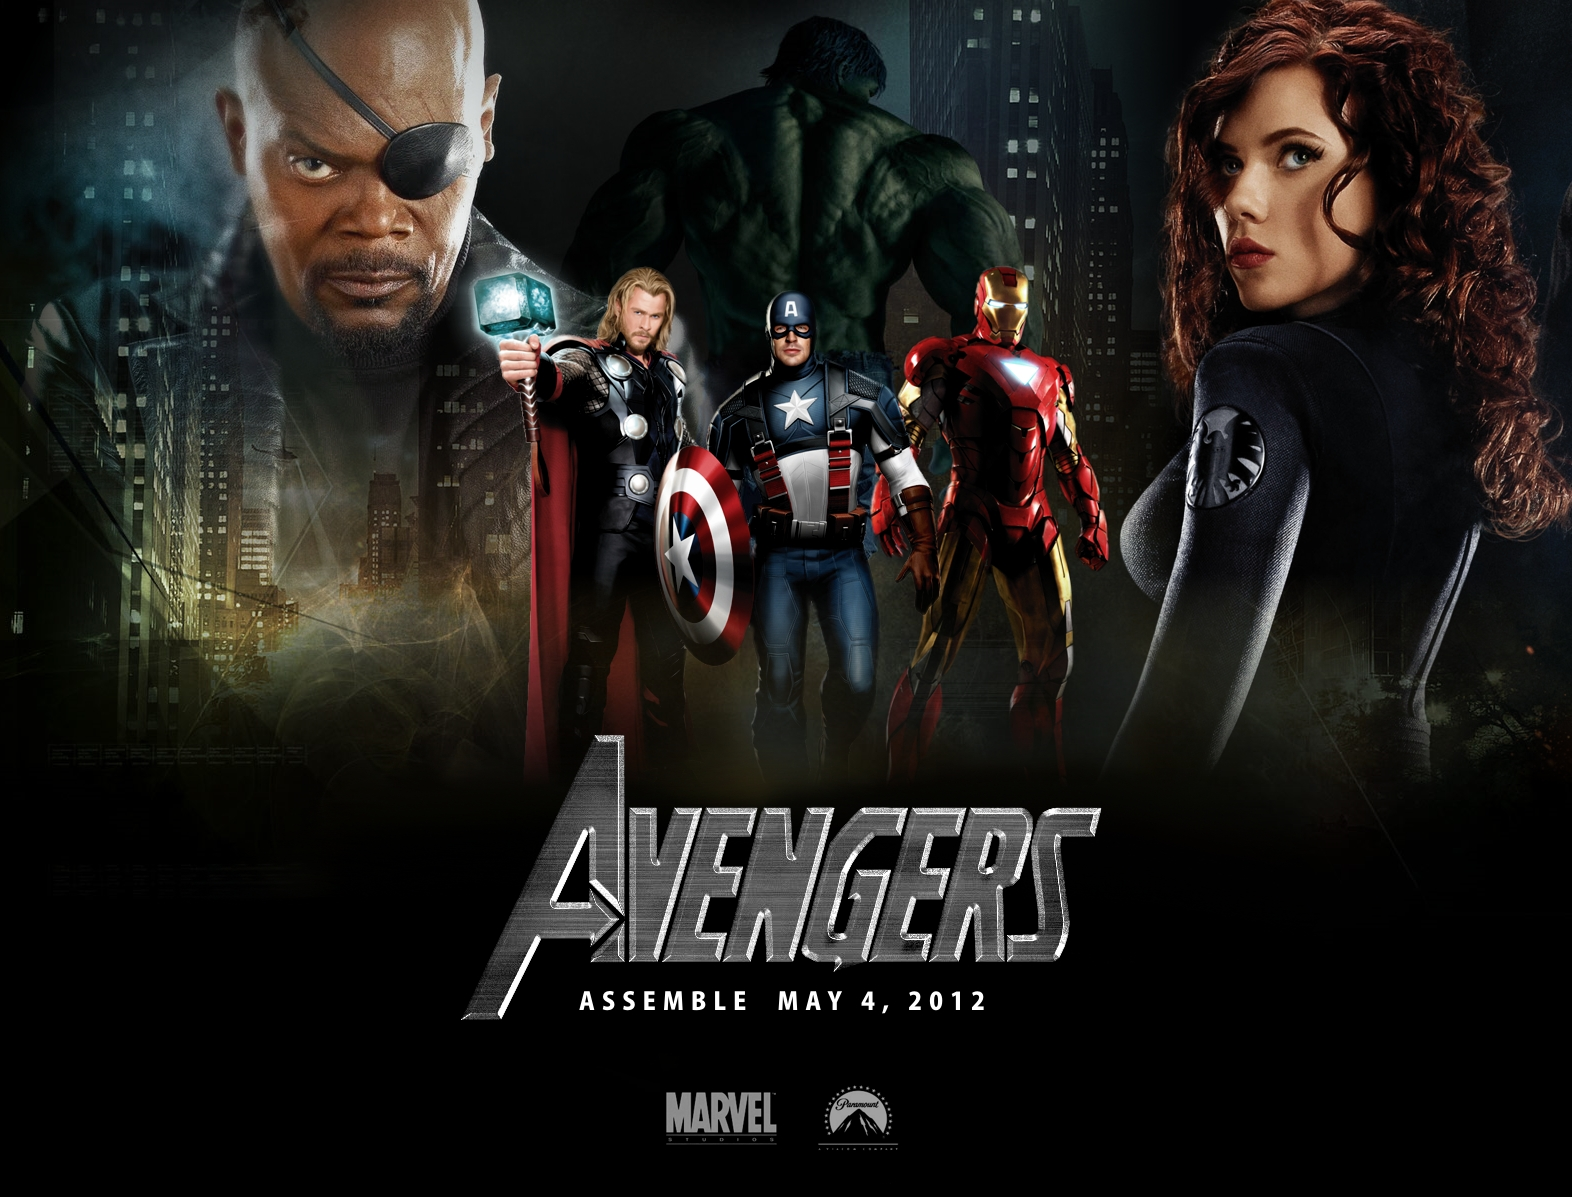 Avengers movie release date